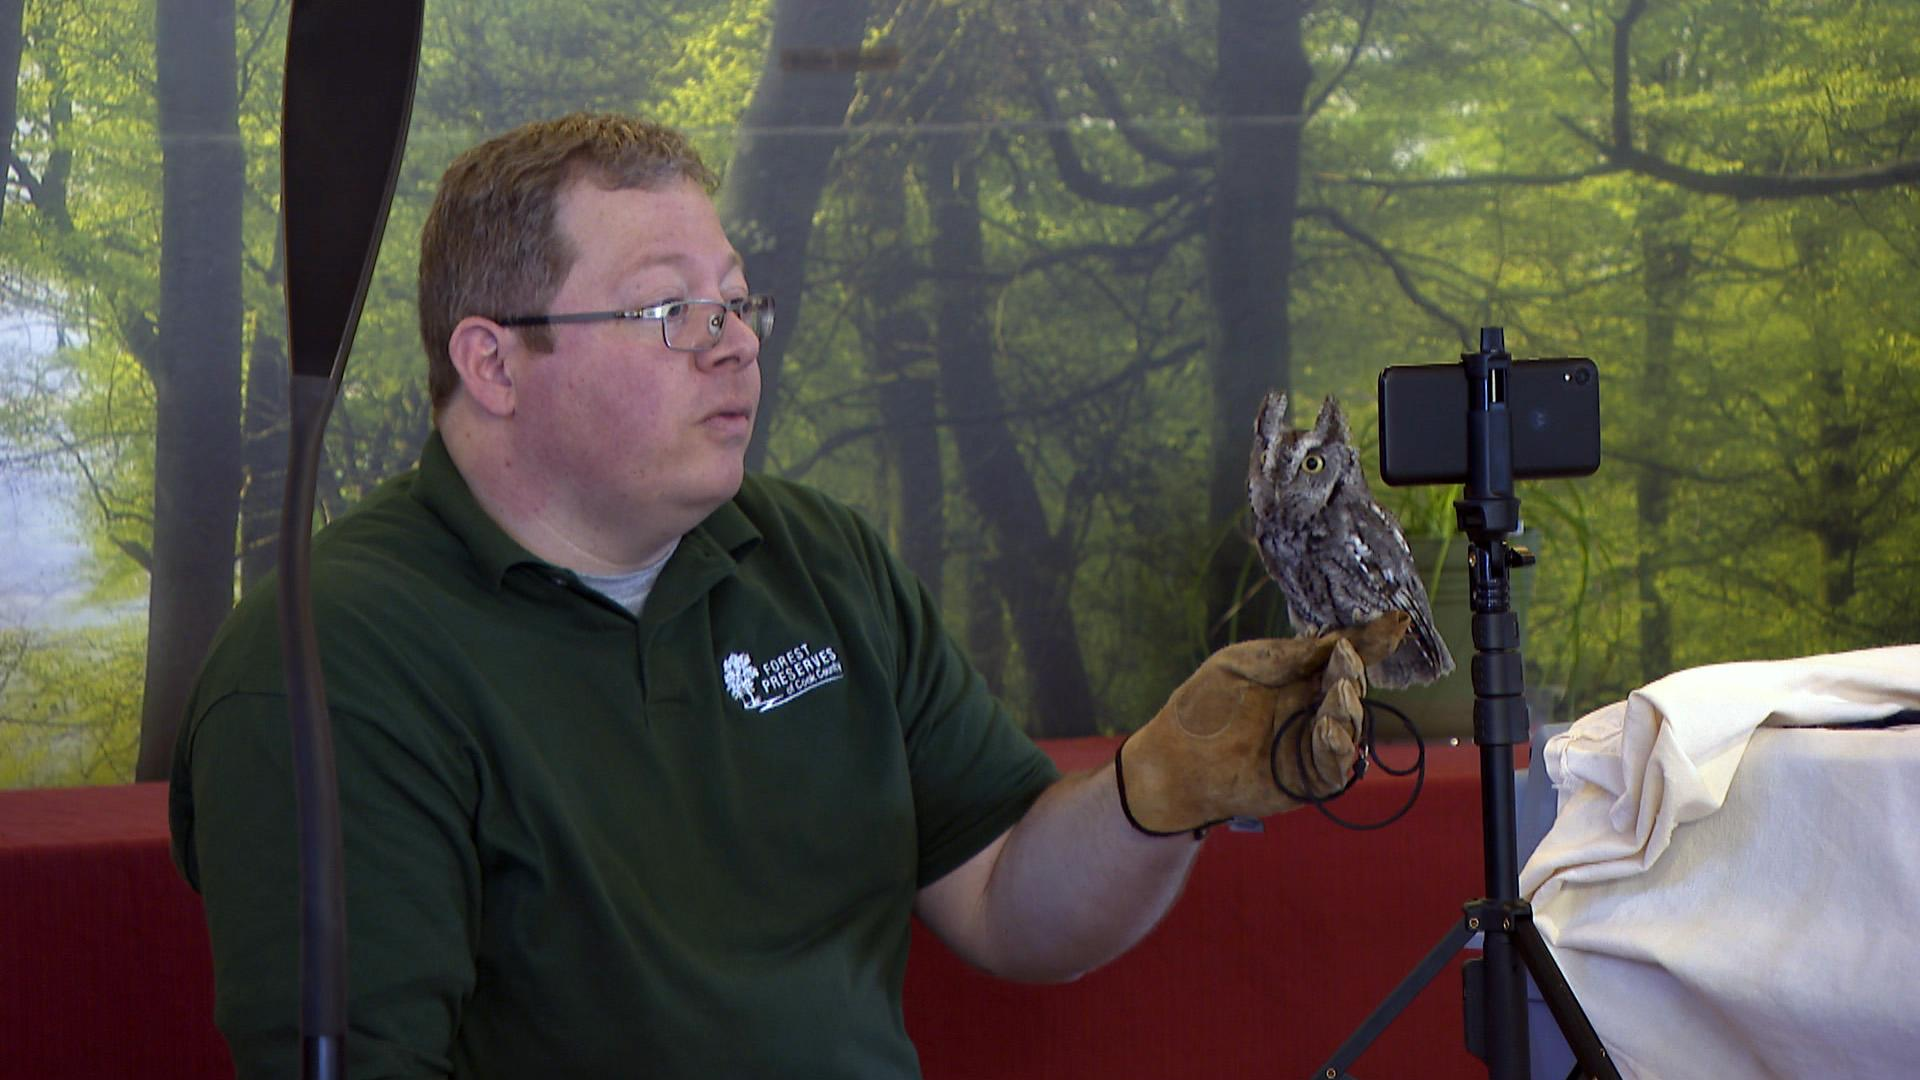 """As part of the program """"Two Owls and a Naturalist,"""" Cook County Forest Preserves naturalist Ryan DePauw broadcasts live via Facebook with a eastern screech owl, one of the smallest owls found in the region, at the River Trail Nature Center on Feb. 18, 2021. (WTTW News)"""